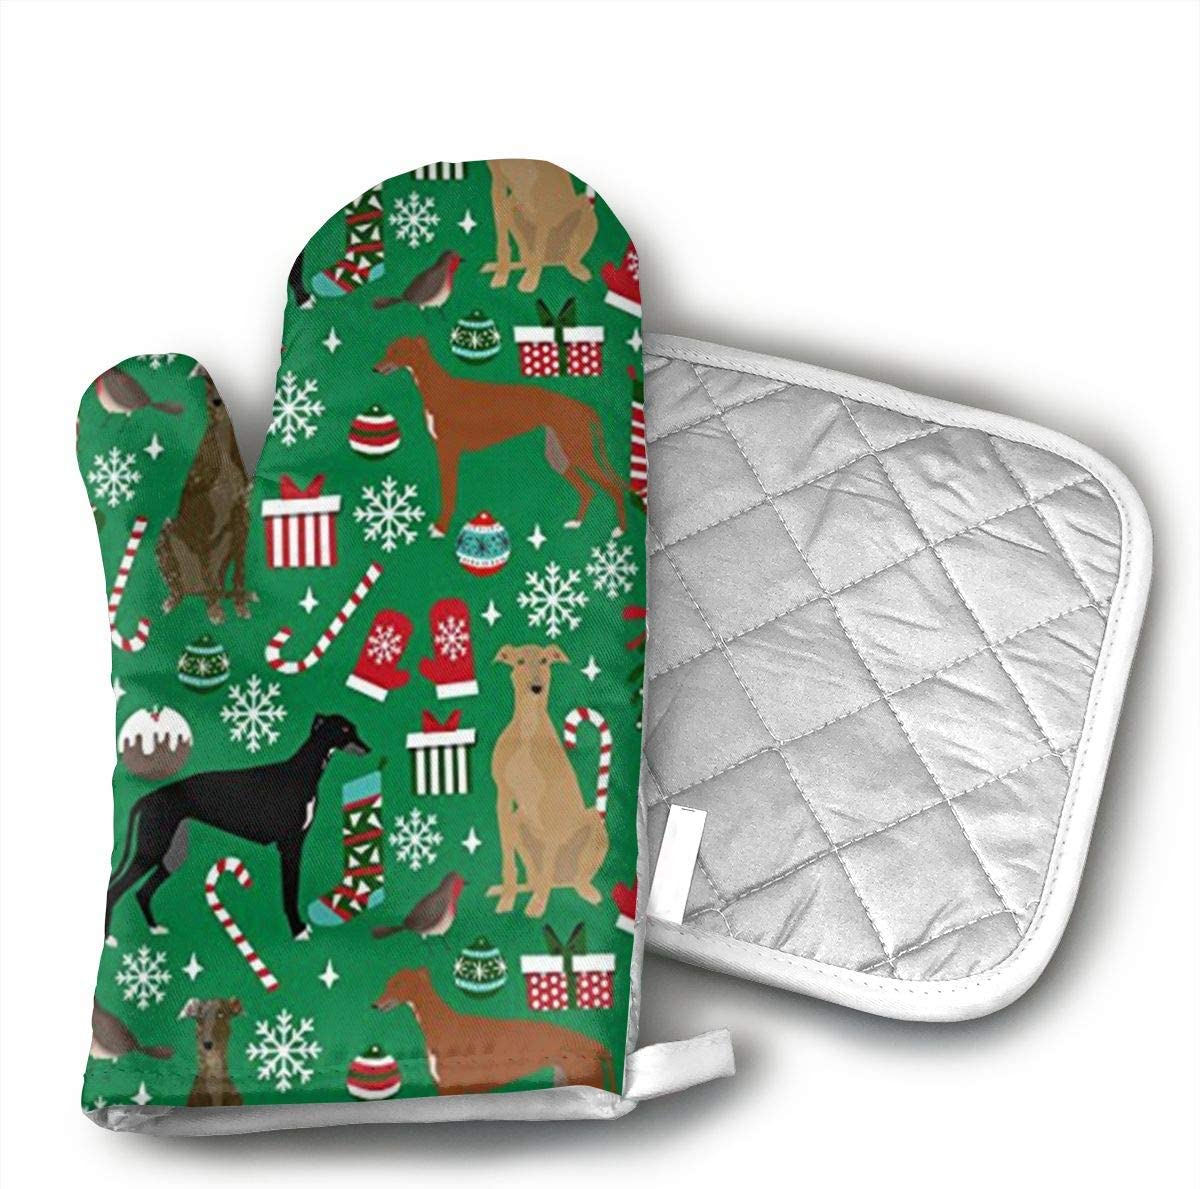 Greyhounds Christmas Snowflake Kitchen Potholder - Heat Resistant Oven Gloves to Protect Hands and Surfaces with Non-Slip Grip,Ideal for Handling Hot Cookware Items.